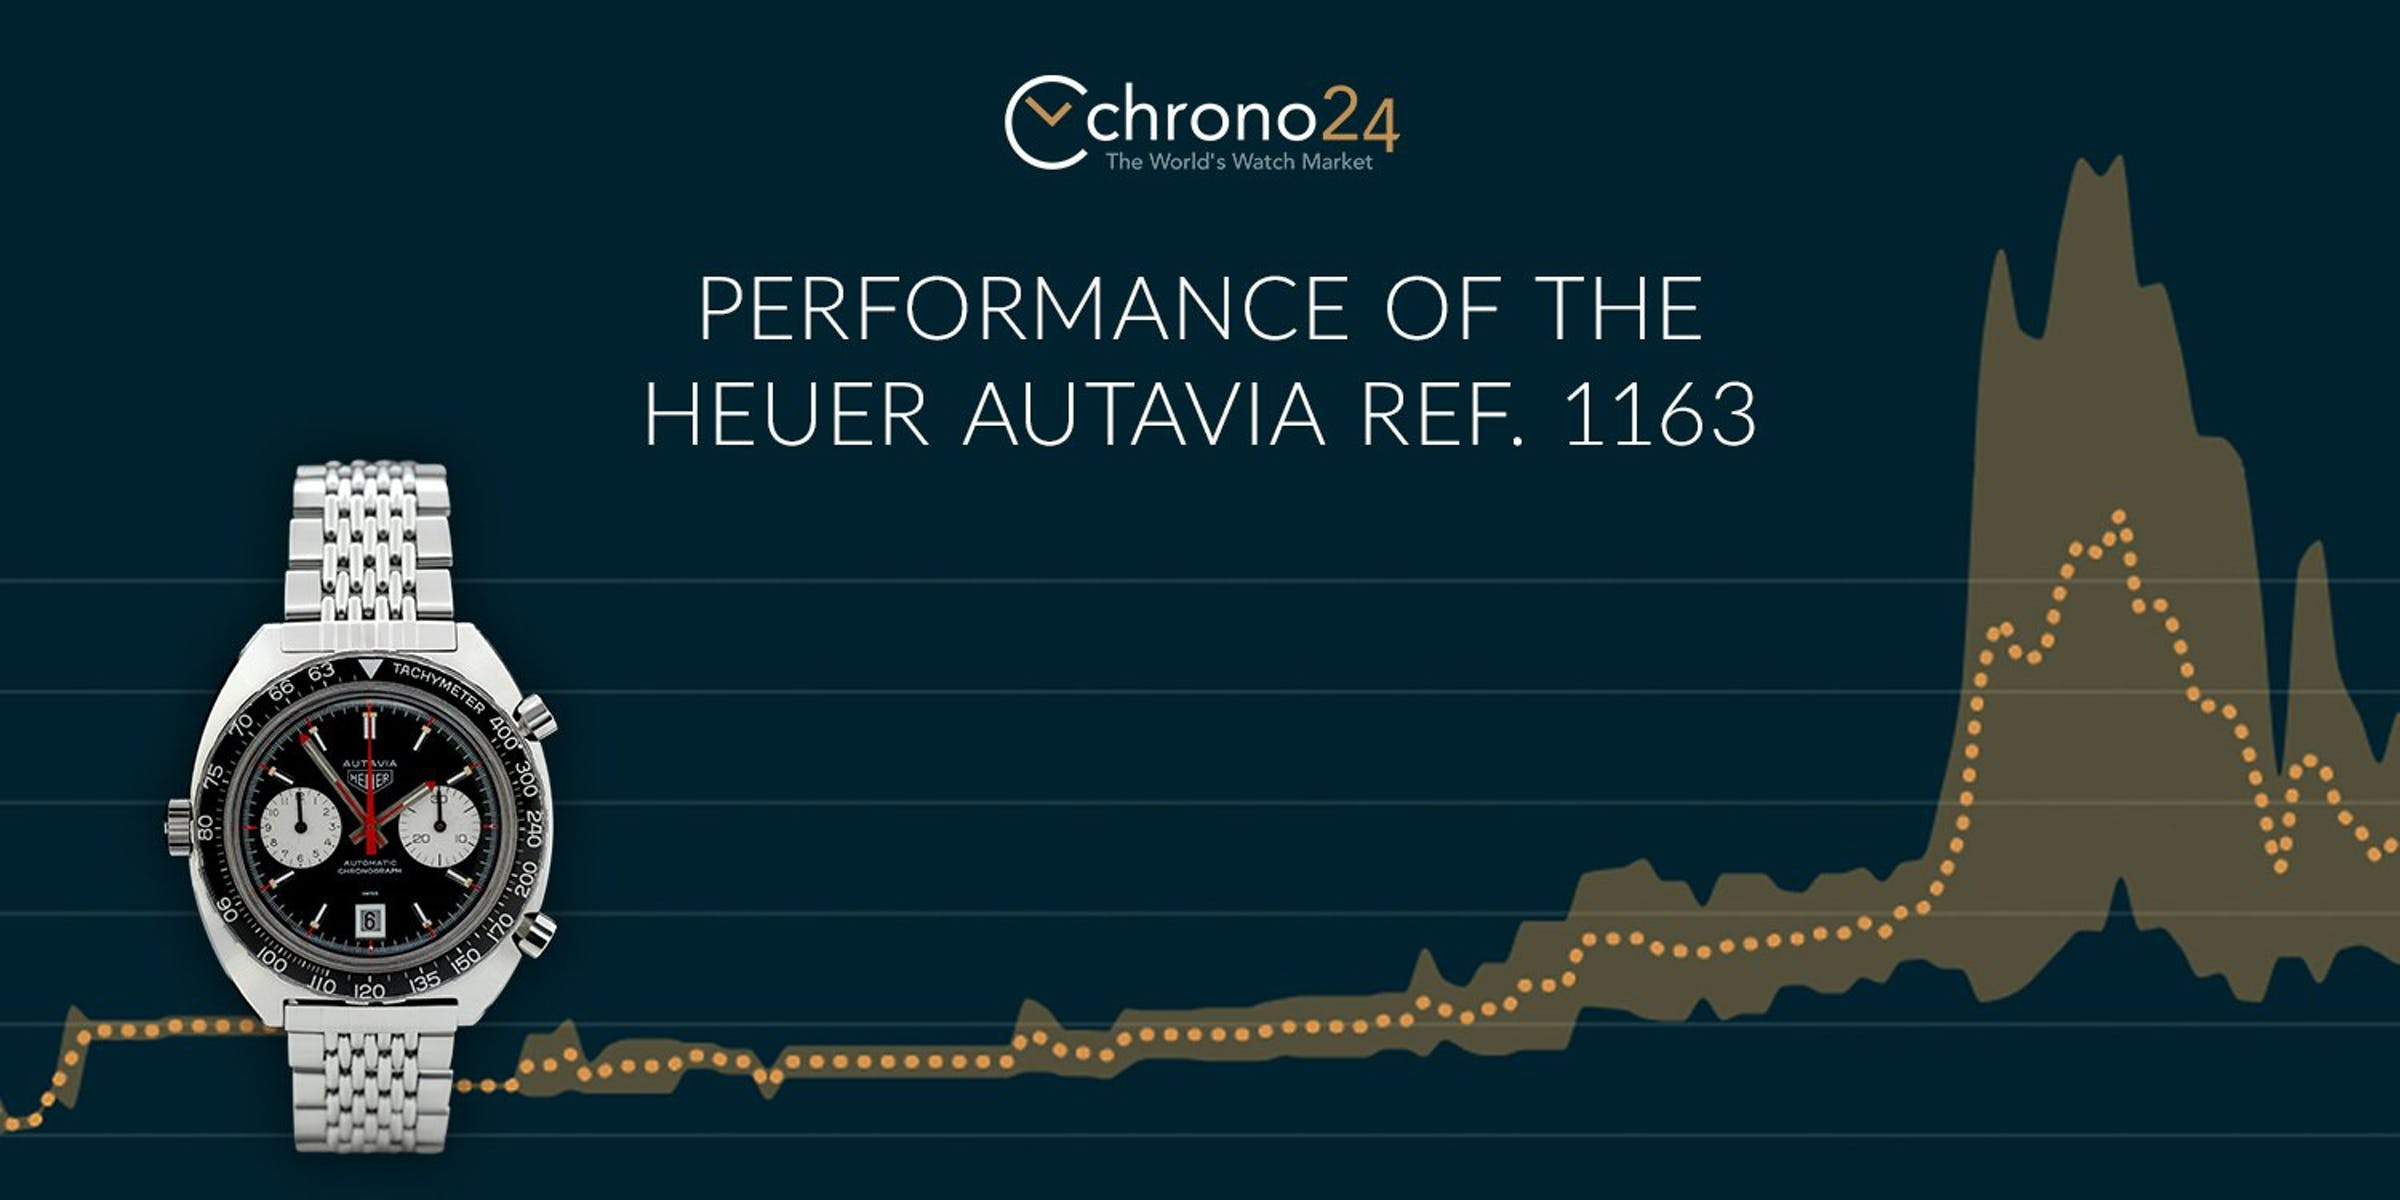 Tracking the Performance of the Heuer Autavia Ref. 1163